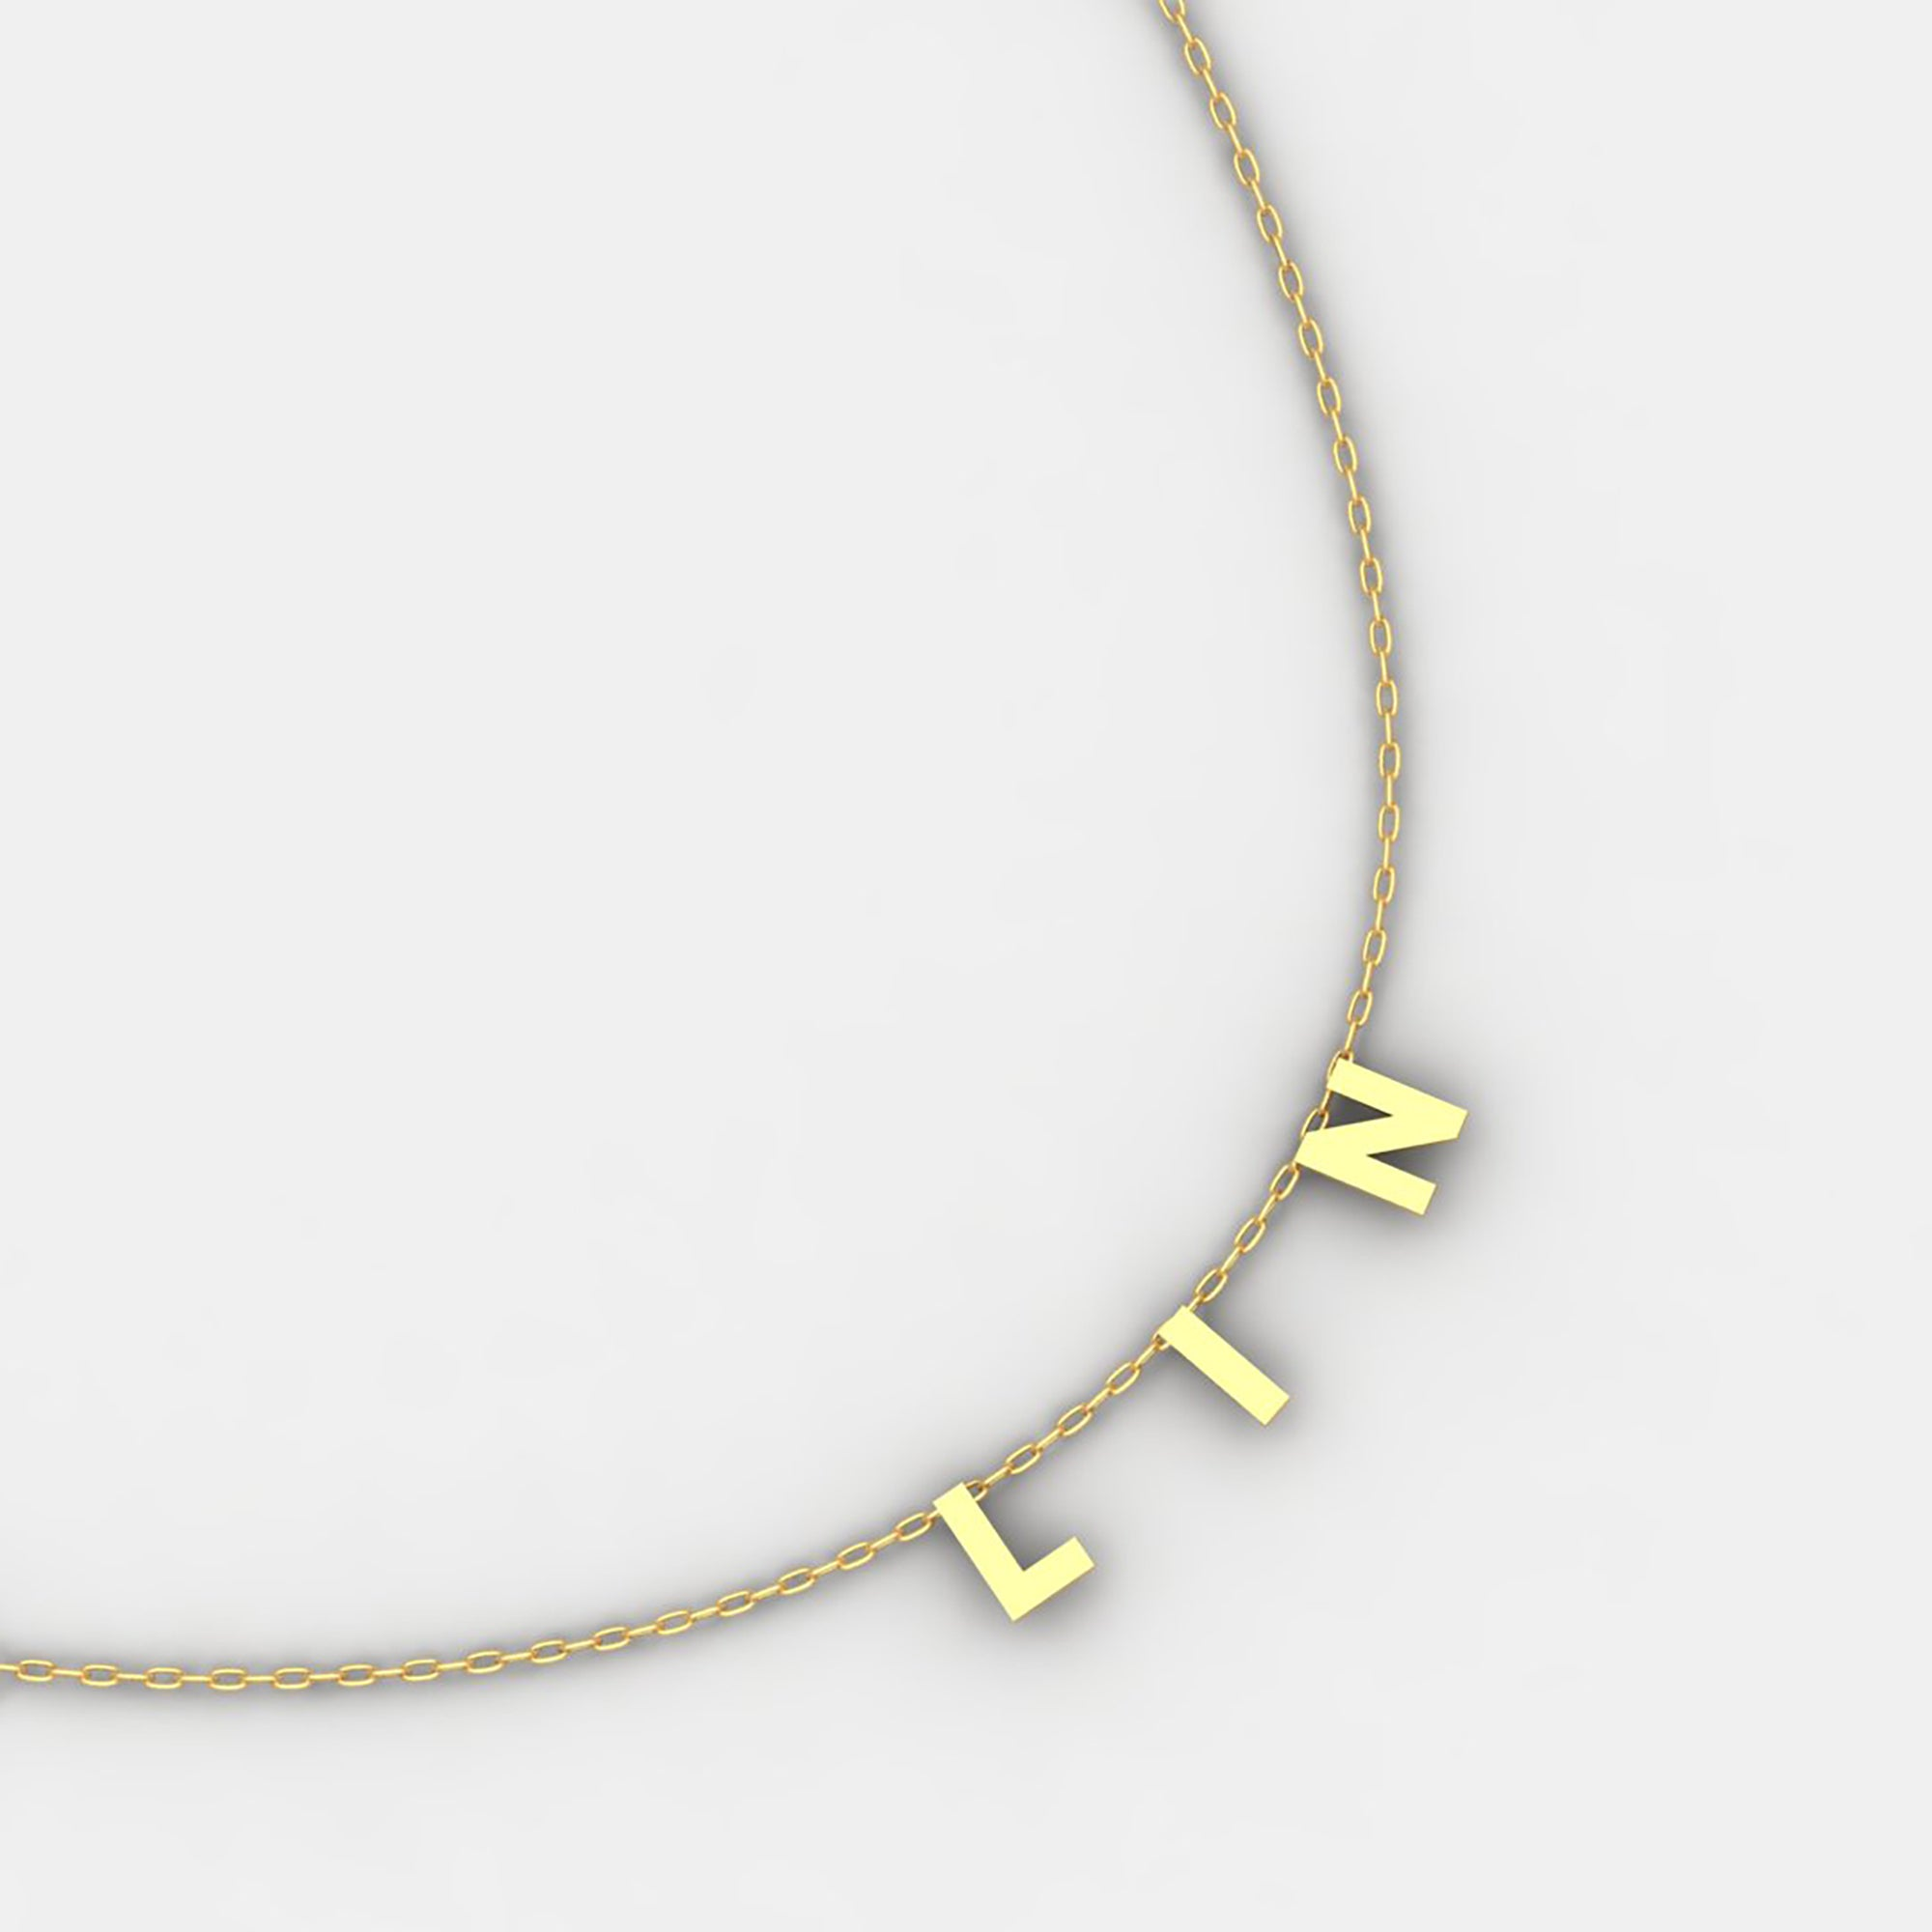 18k Yellow Gold Hope Necklace